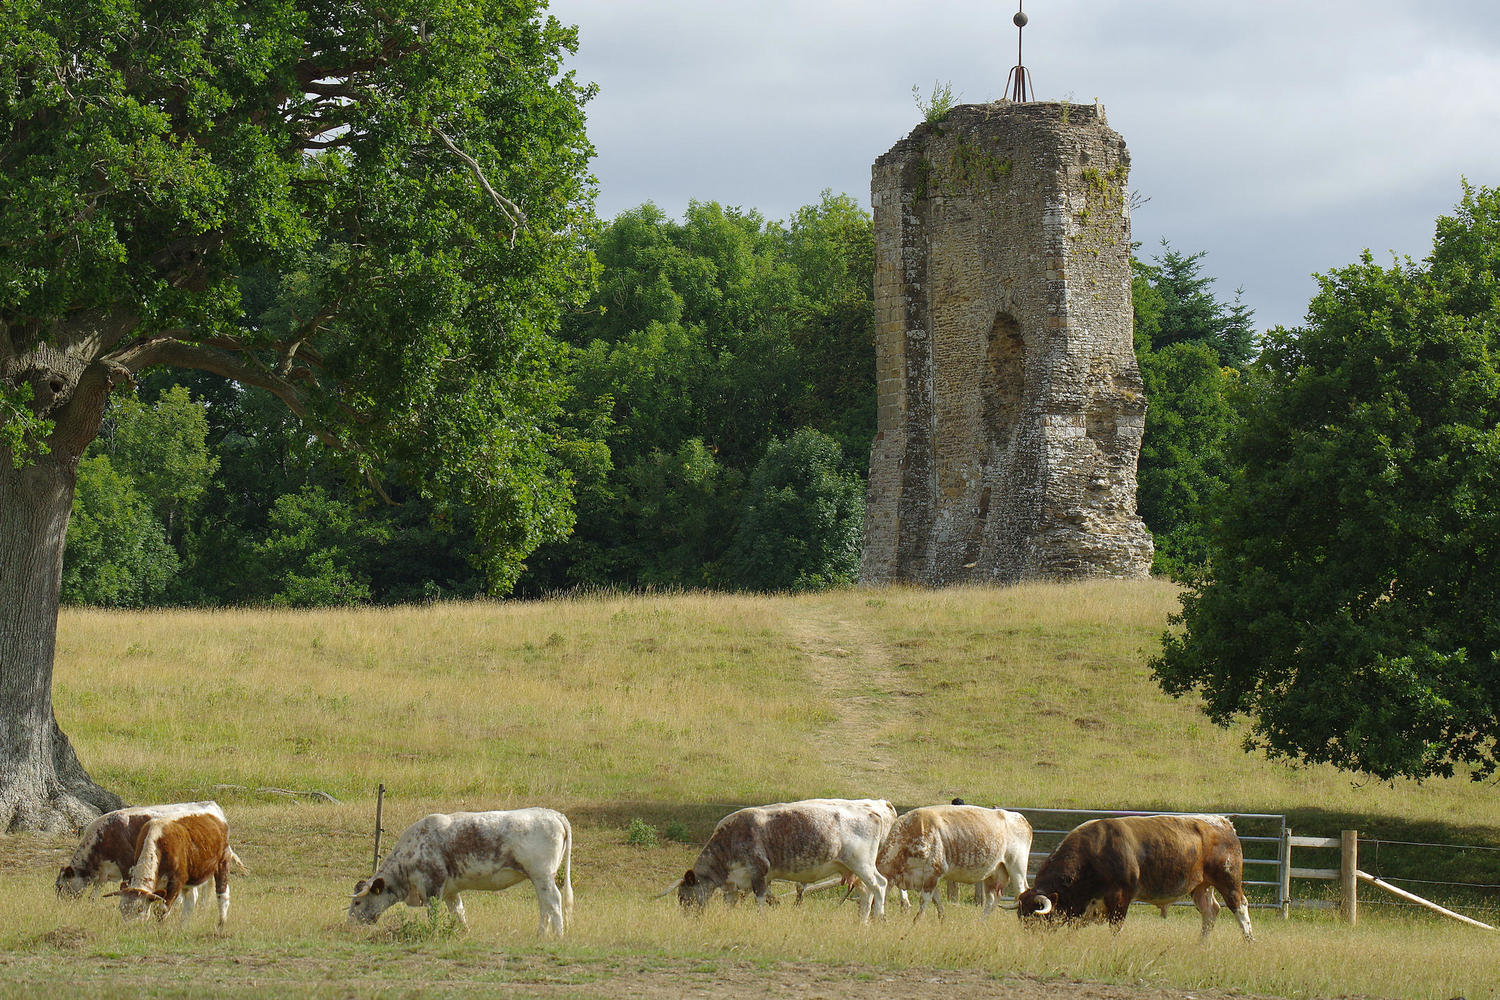 Longhorn cattle grazing in front of the remains of Knepp Castle